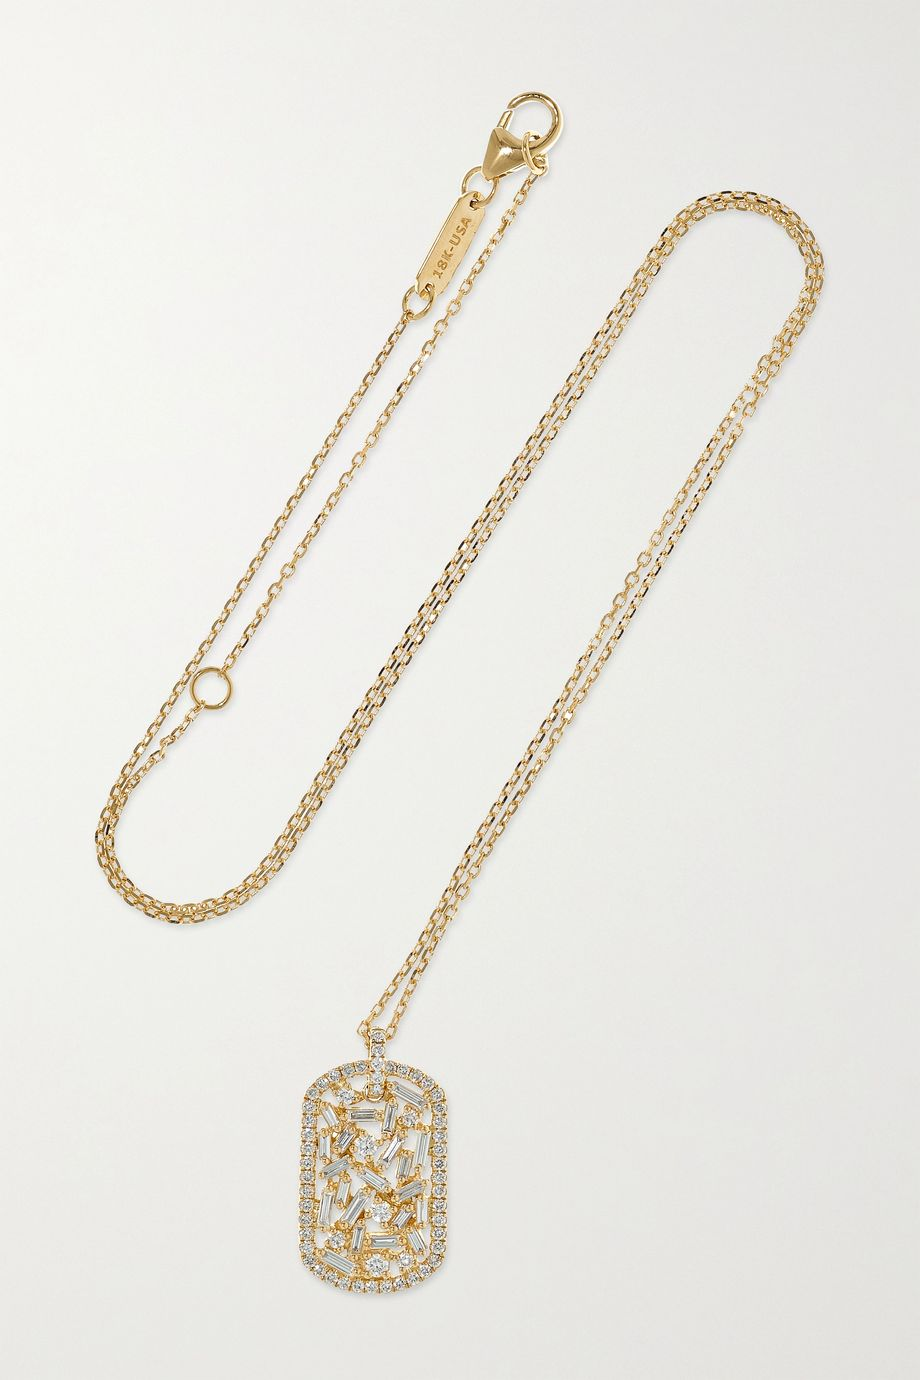 Suzanne Kalan 18-karat gold diamond necklace